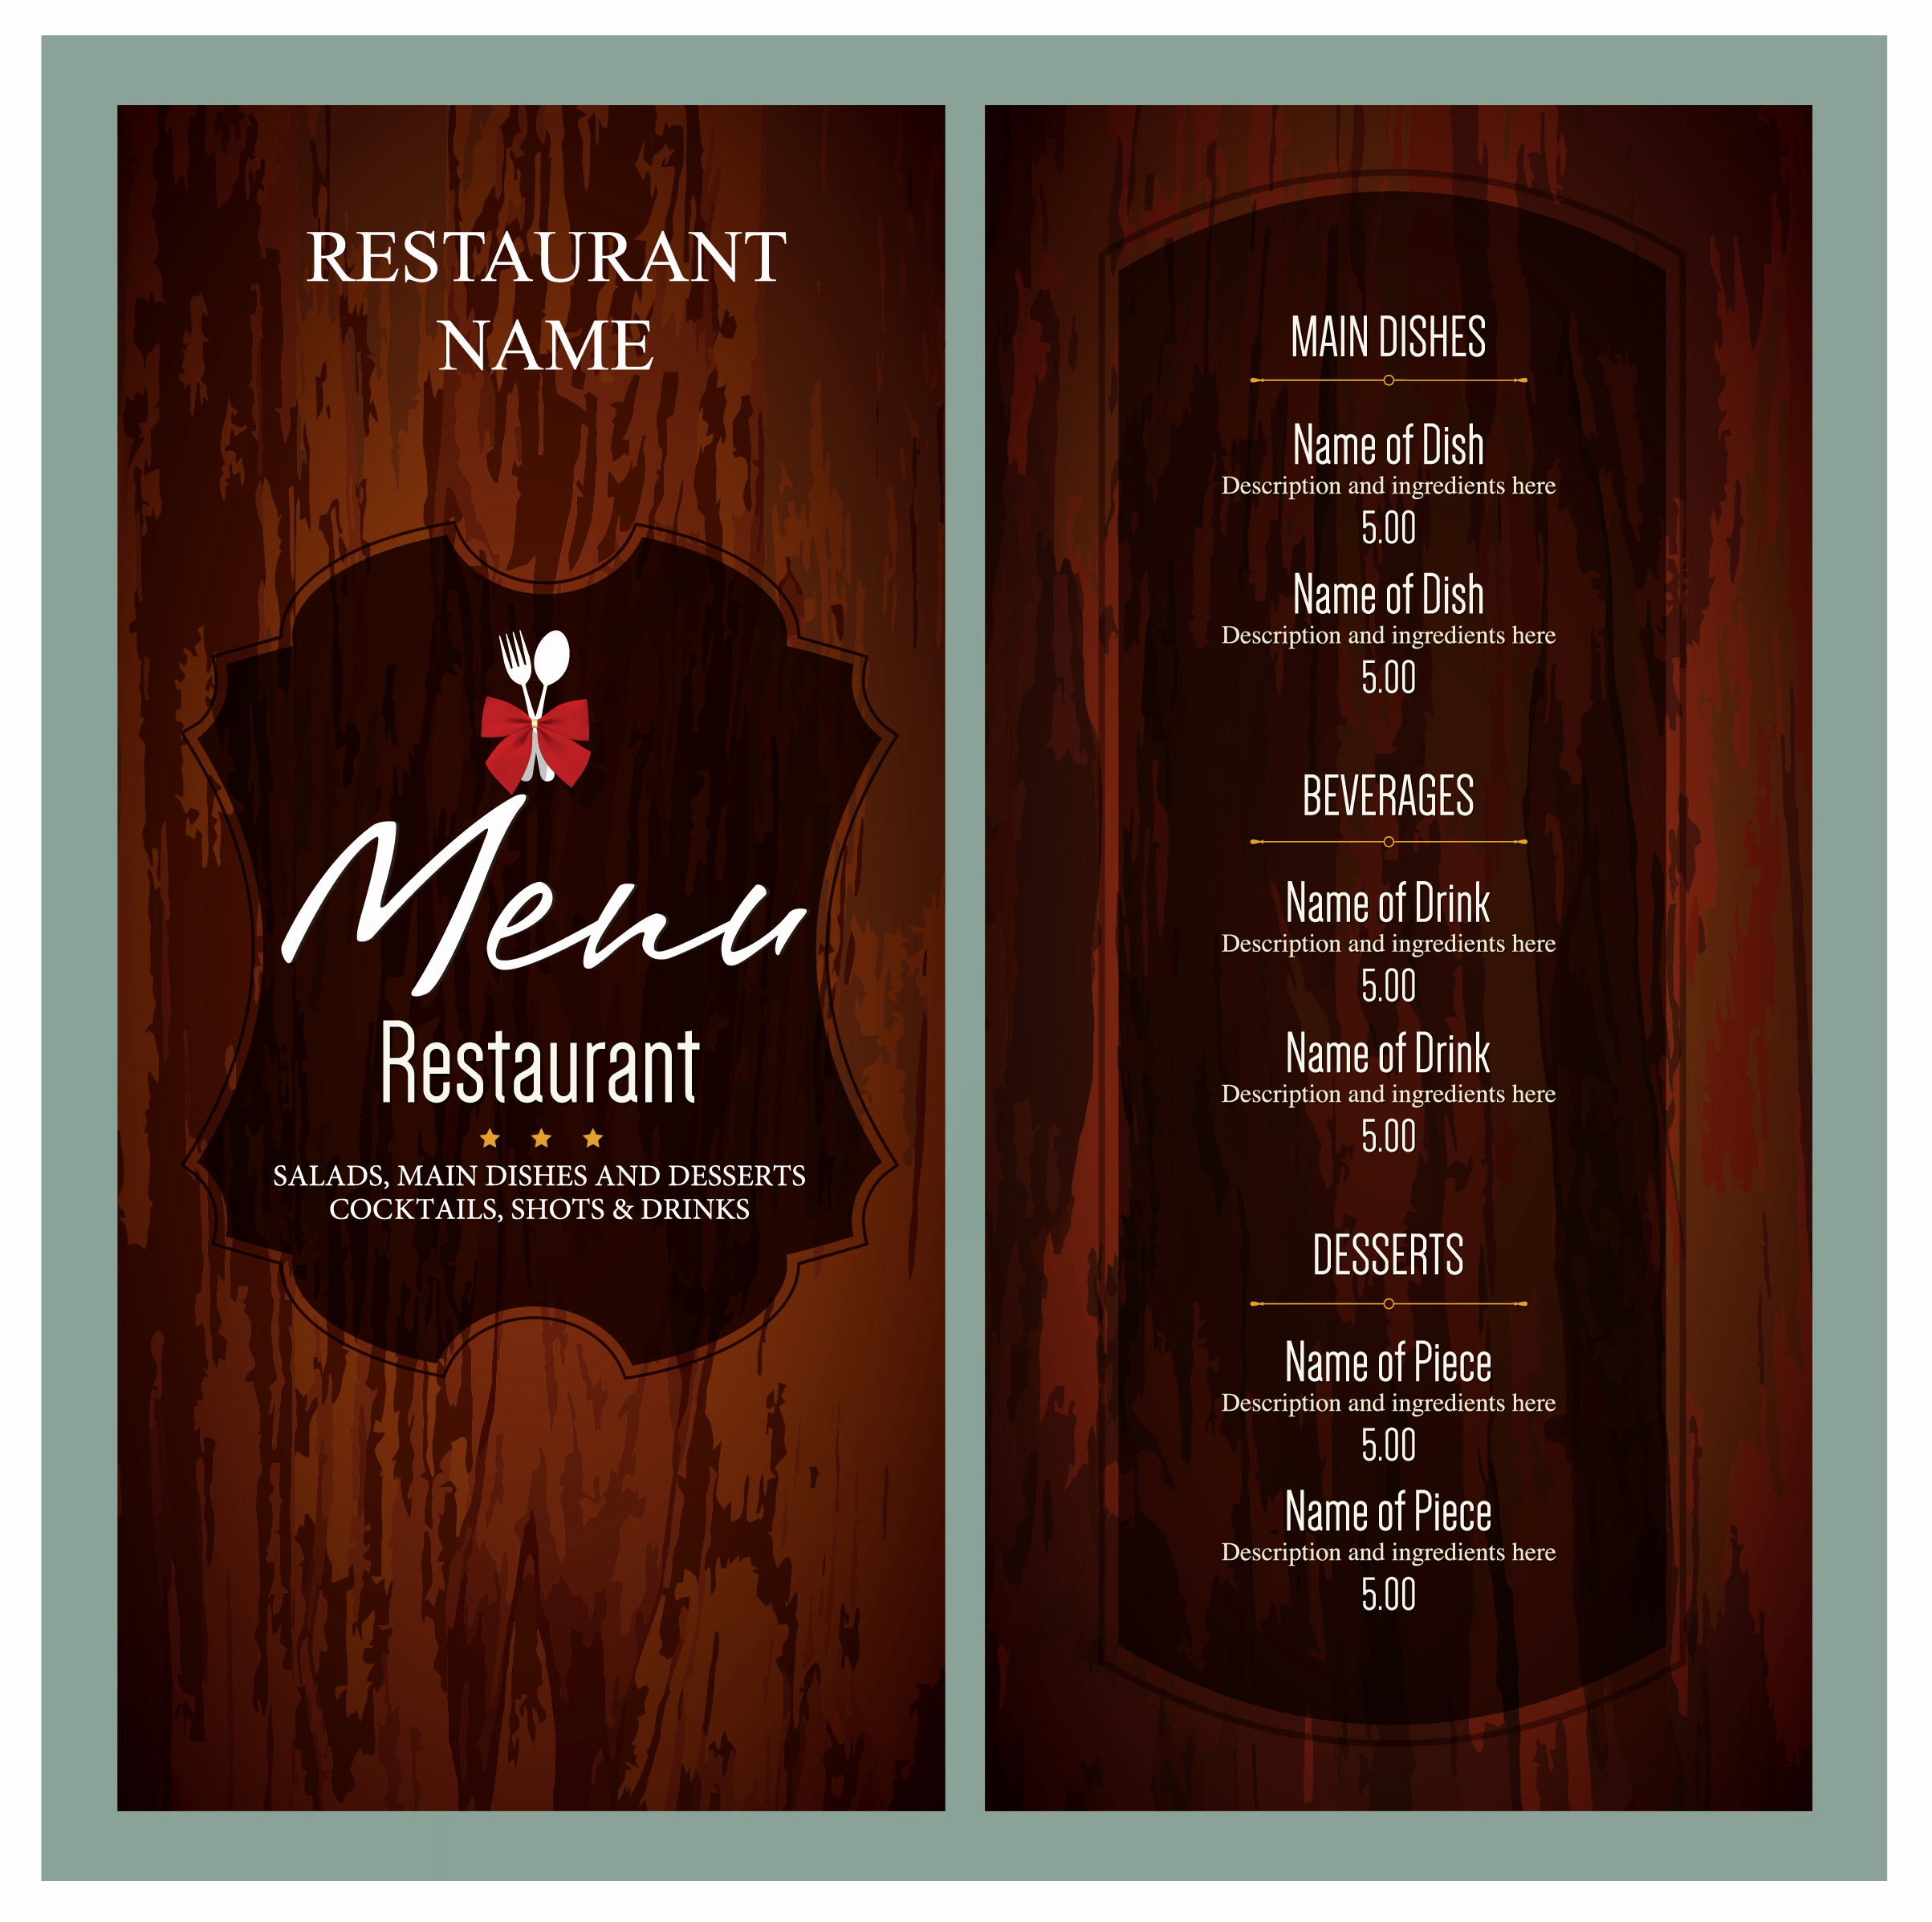 Italian Restaurant Menu Template Inspirational 10 Free Sample Italian Menu Templates Printable Samples